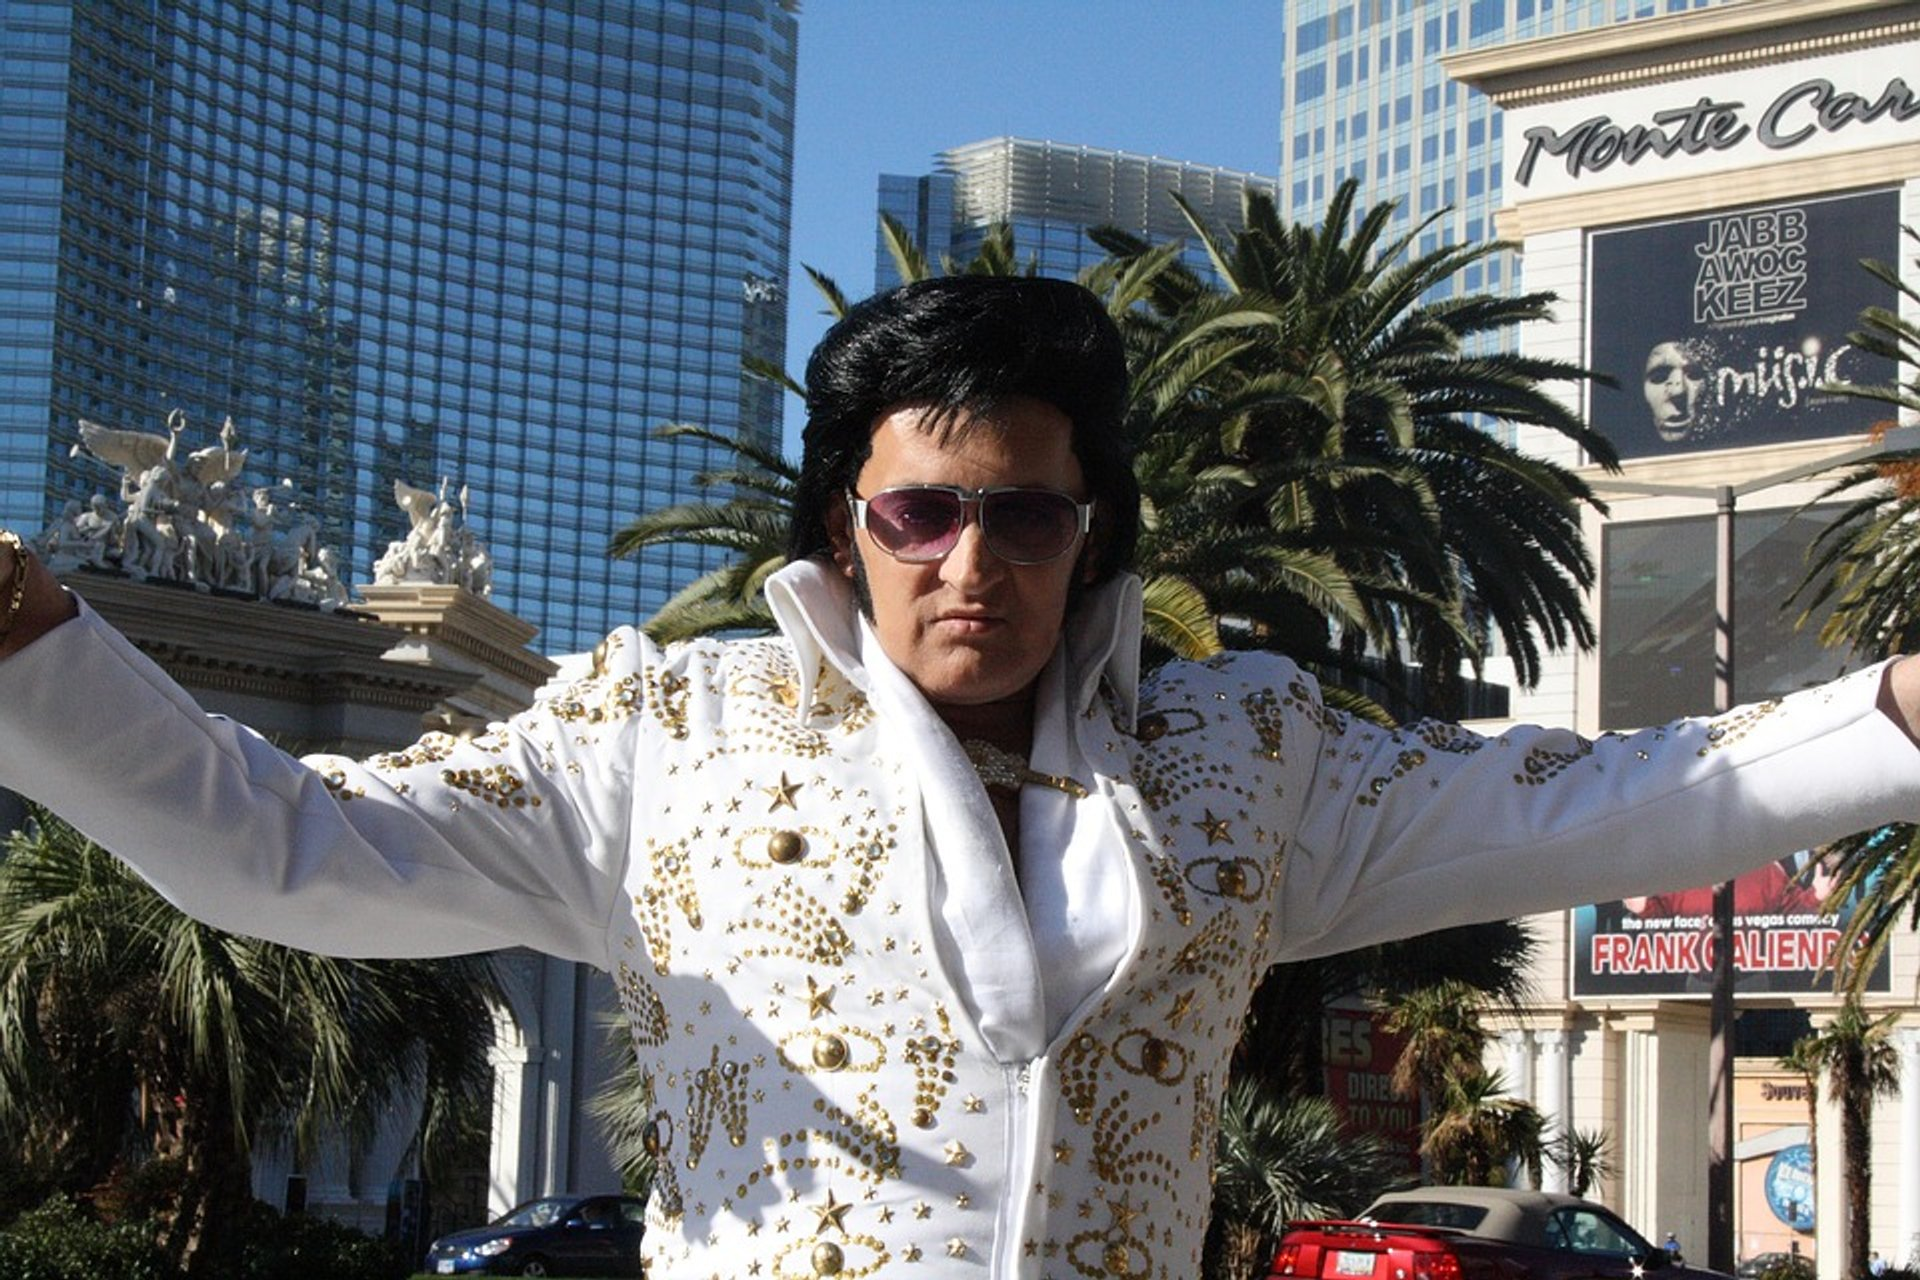 Elvis Festival in Las Vegas 2019 - Best Time